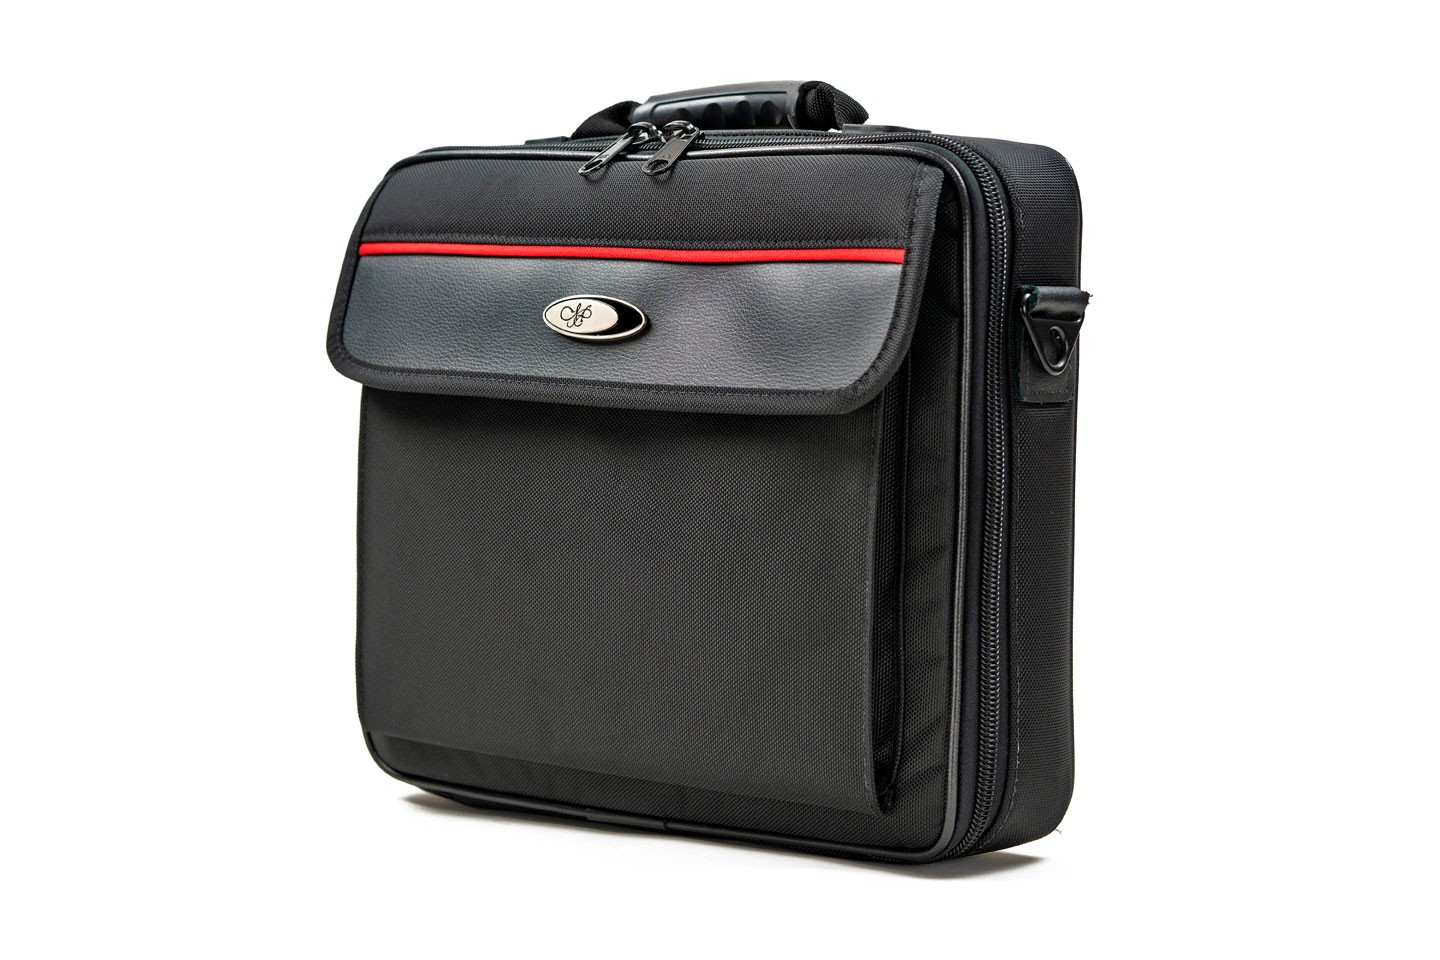 <h1>LT15</h1><p>15-inch Laptop Bag</p>